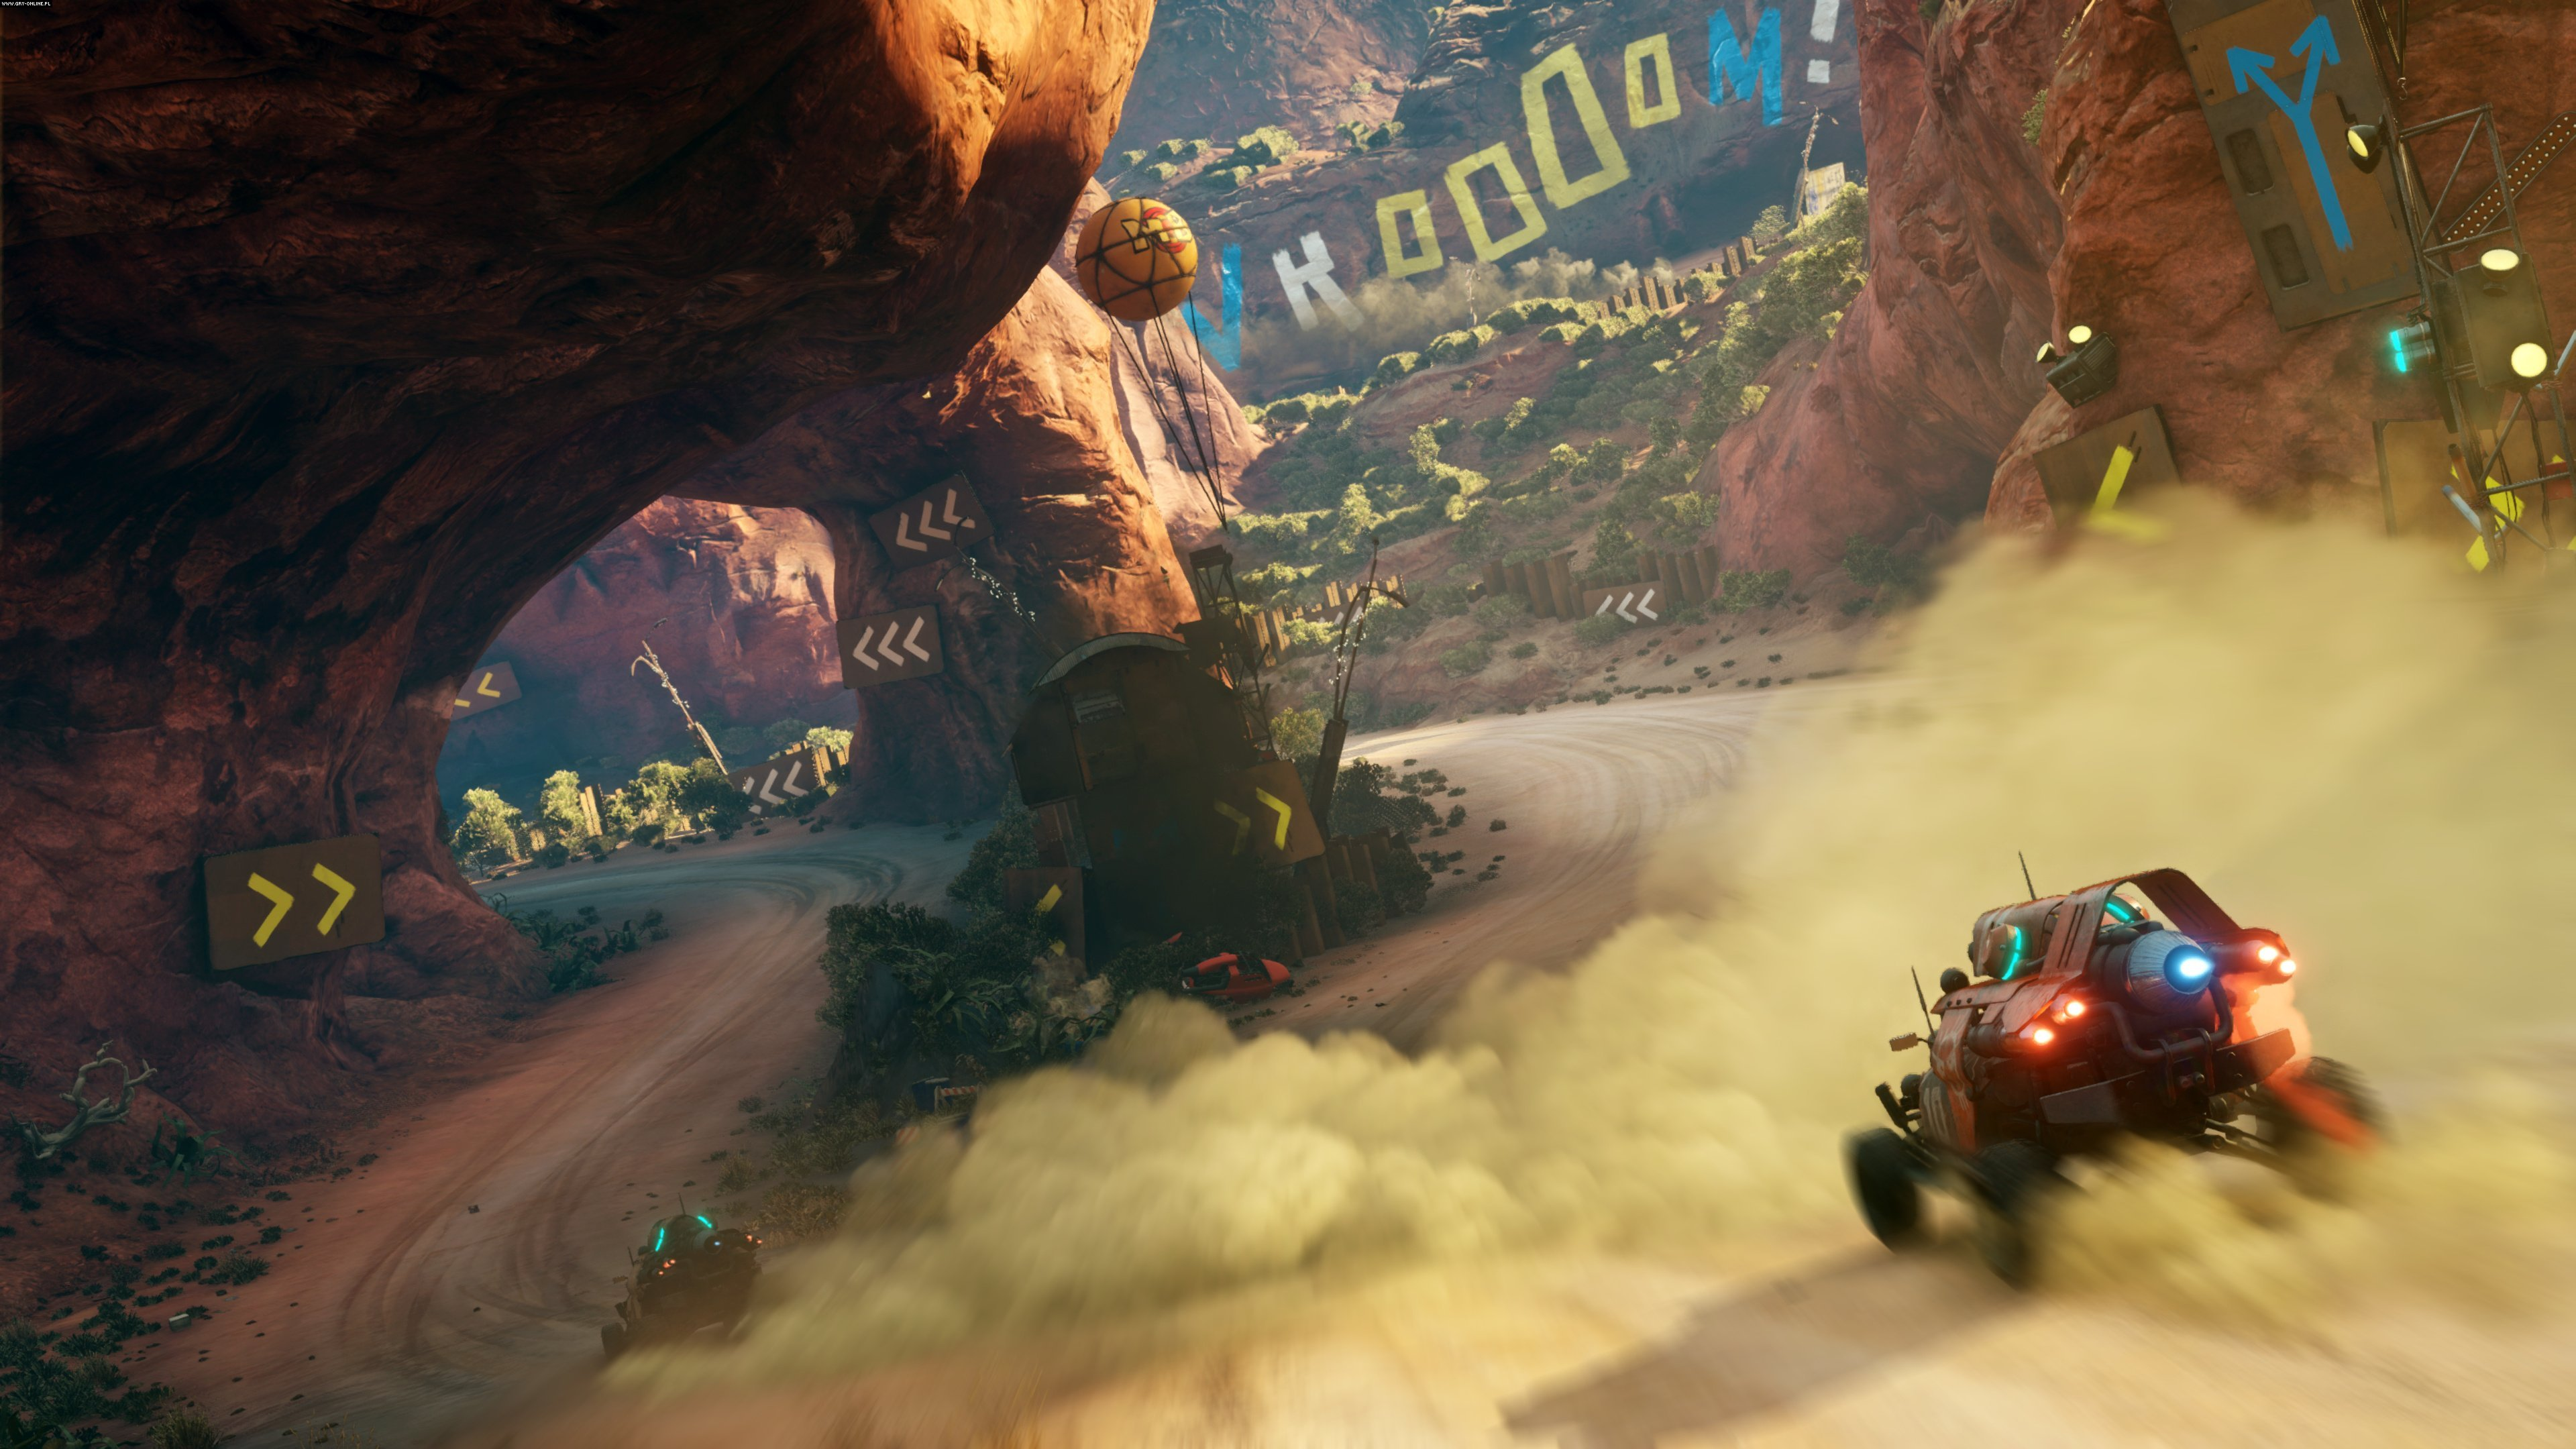 RAGE 2 PC, PS4, XONE Games Image 3/33, Avalanche Studios, Bethesda Softworks